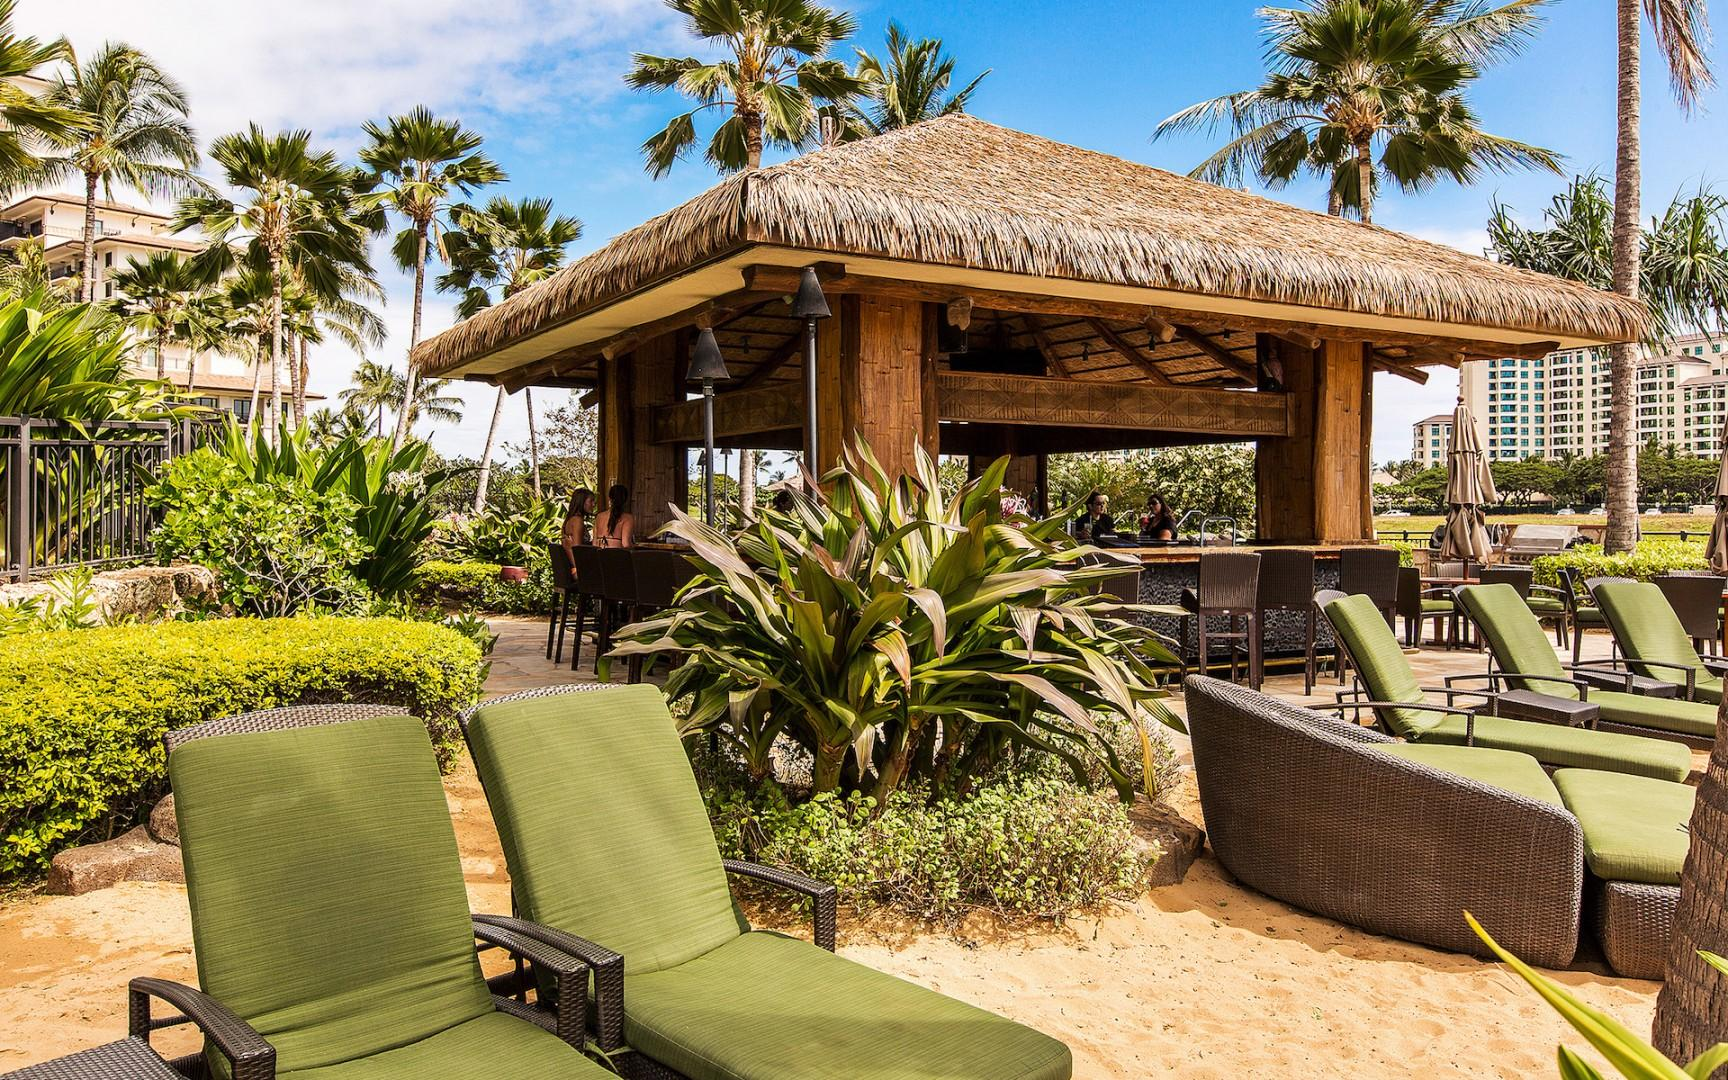 Oceanfront Beach Bar with live music several nights each week